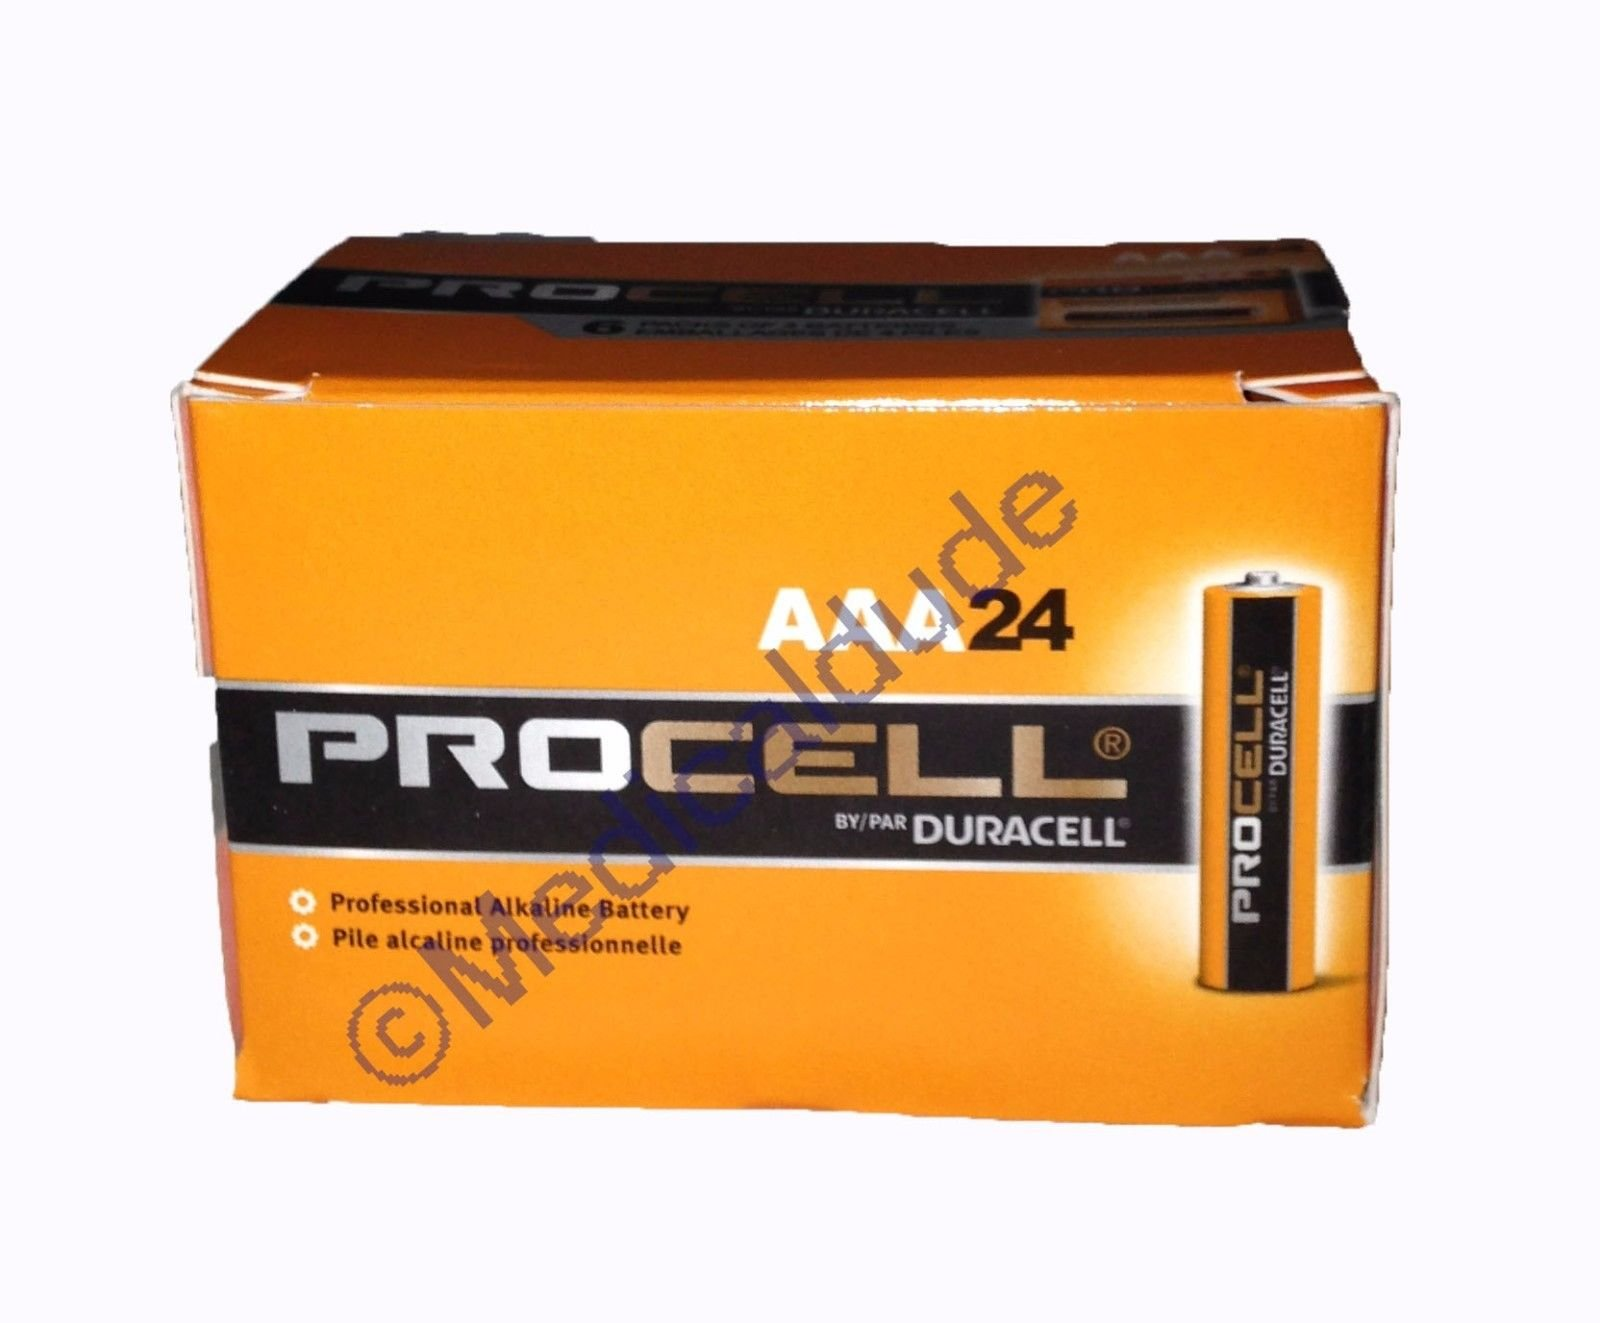 Duracell Procell PC1500 Alkaline-Manganese Dioxide Battery, AA Size, 1.5V,  24